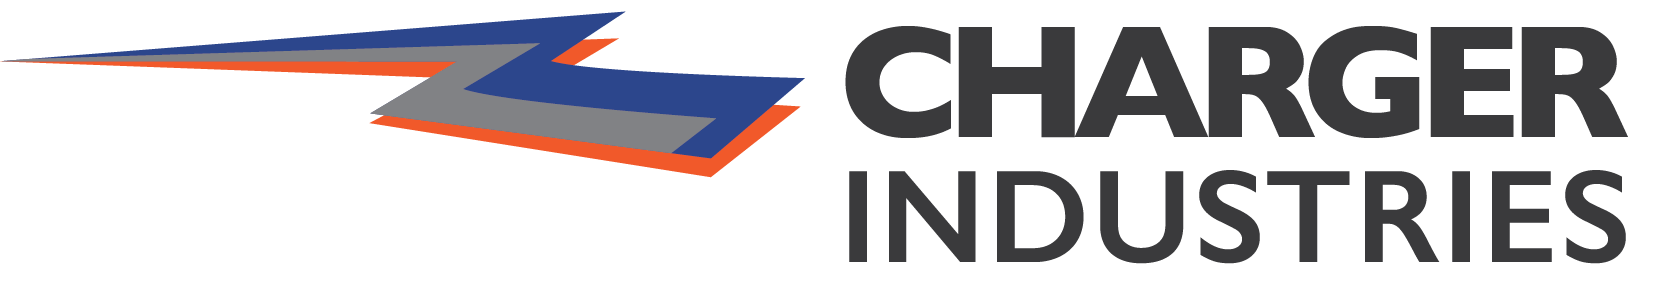 Charger Industries Ltd.